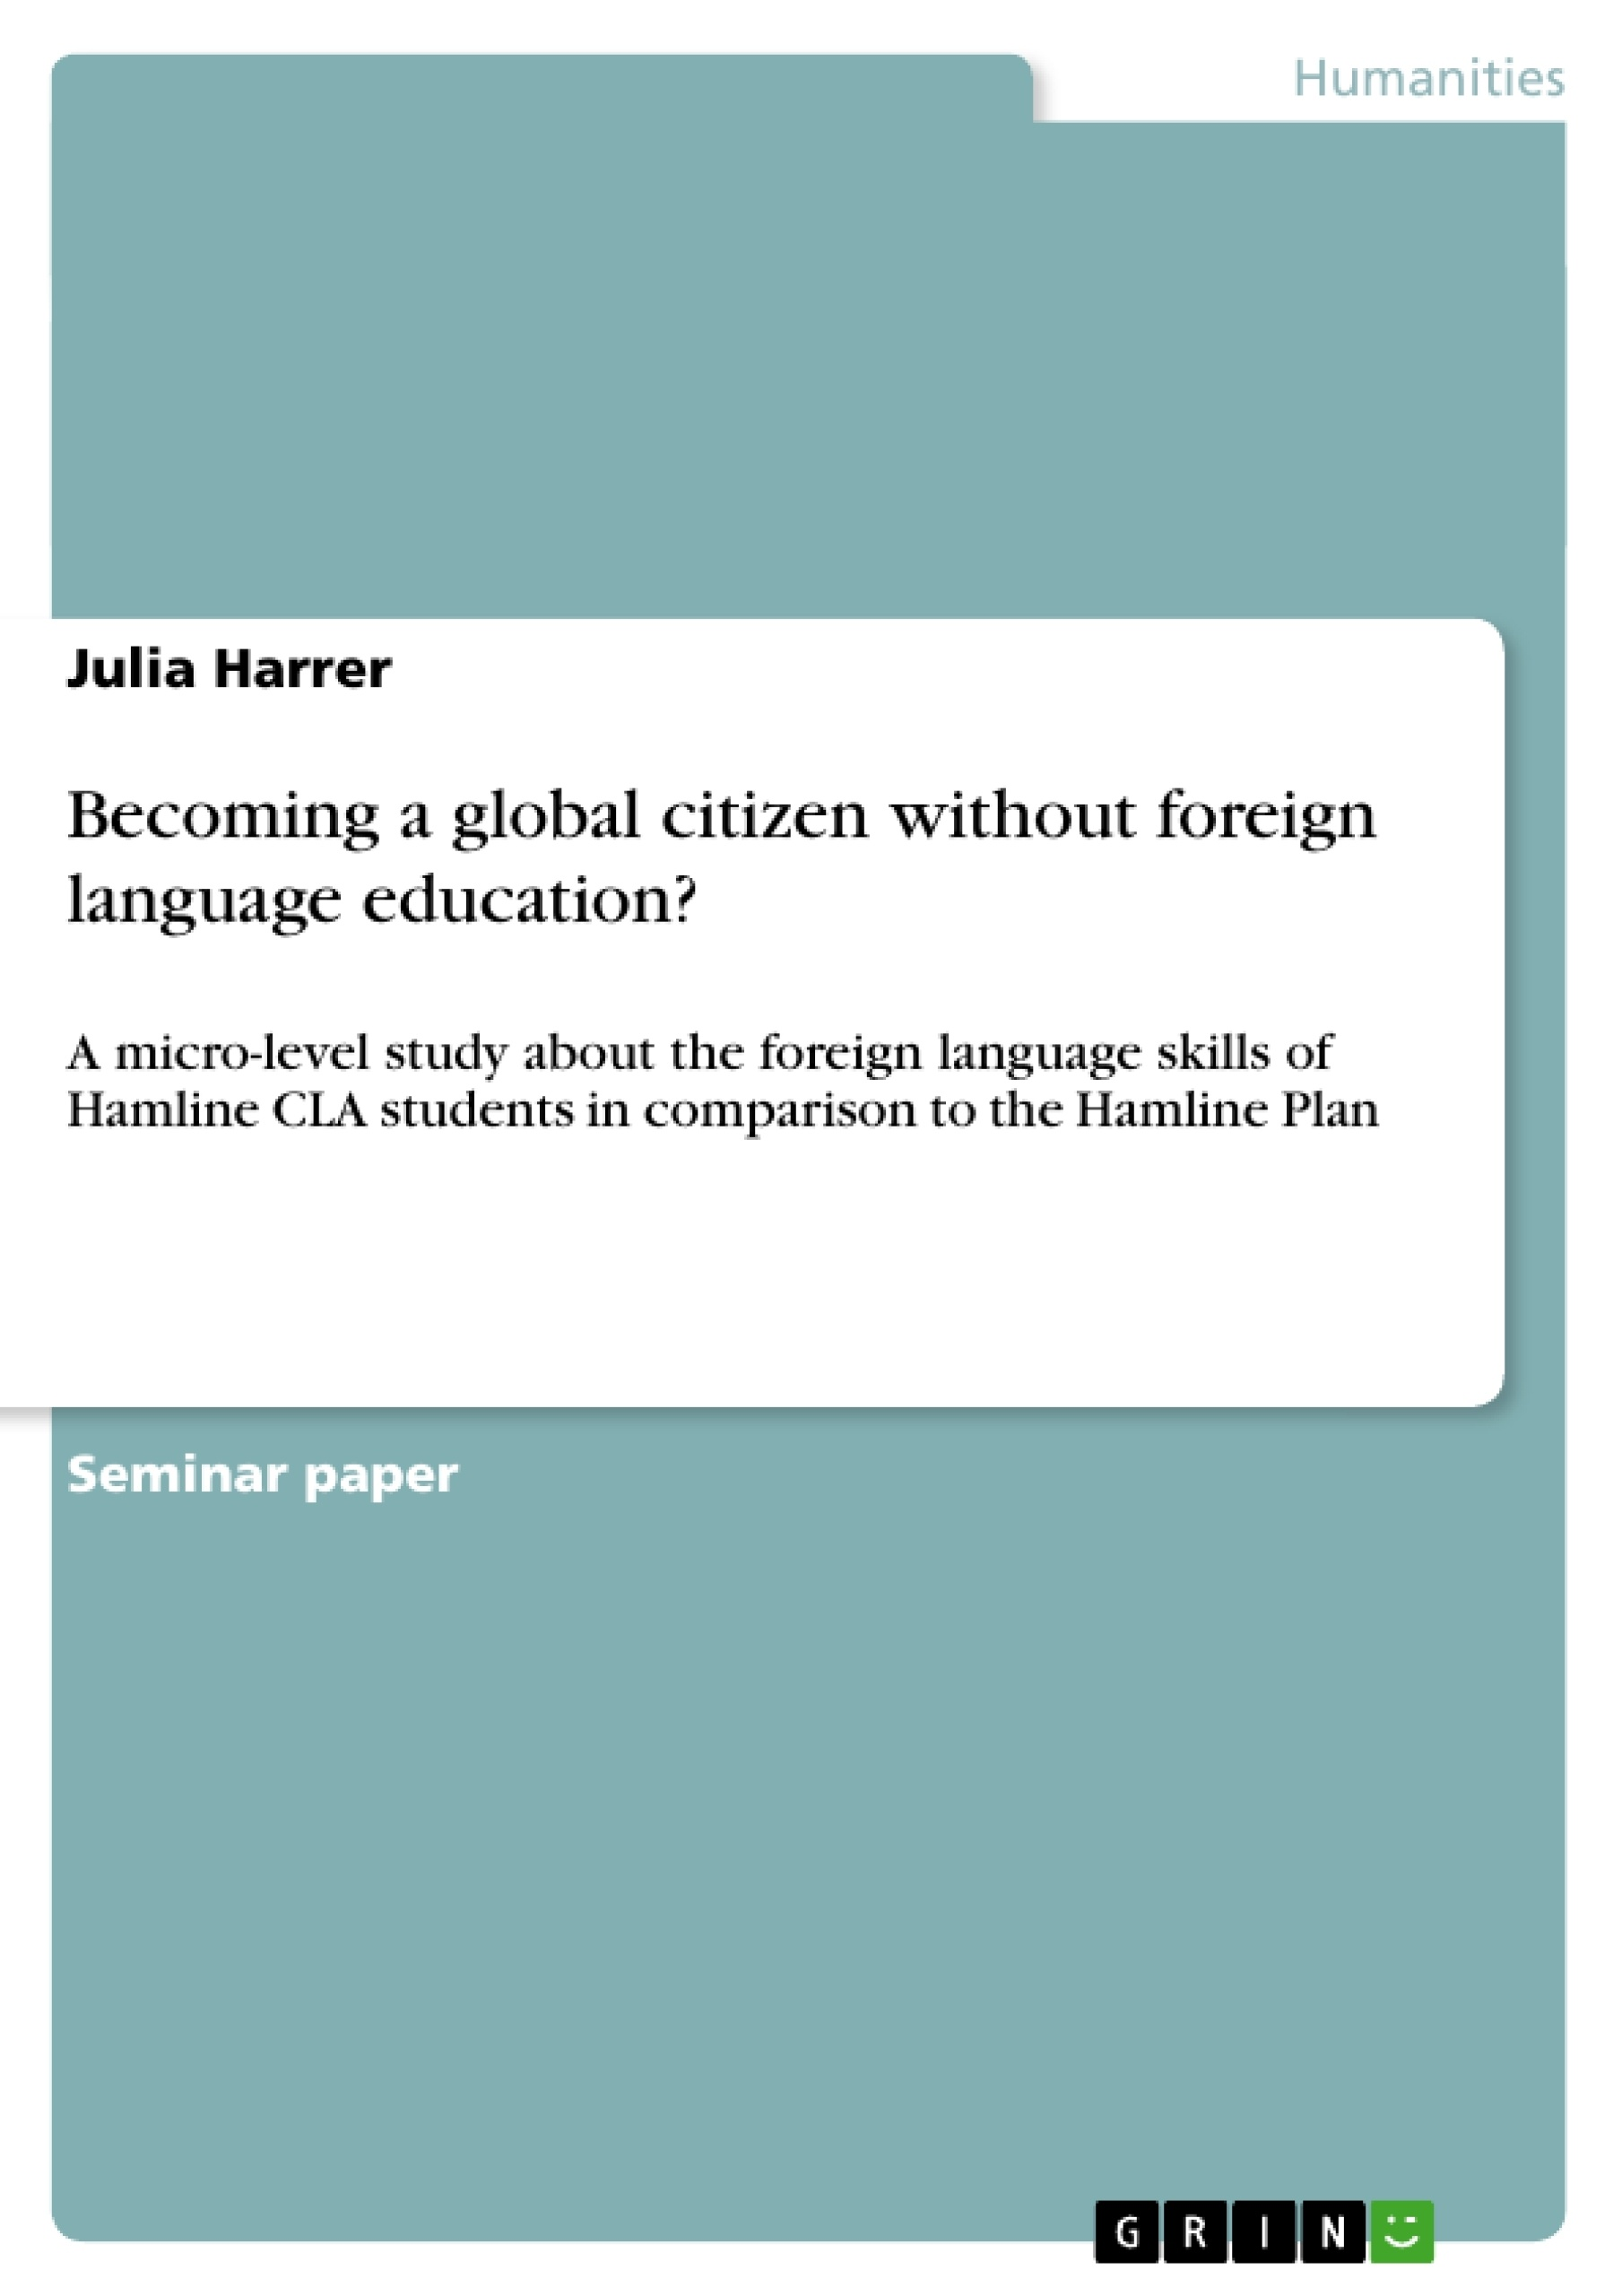 Title: Becoming a global citizen without foreign language education?